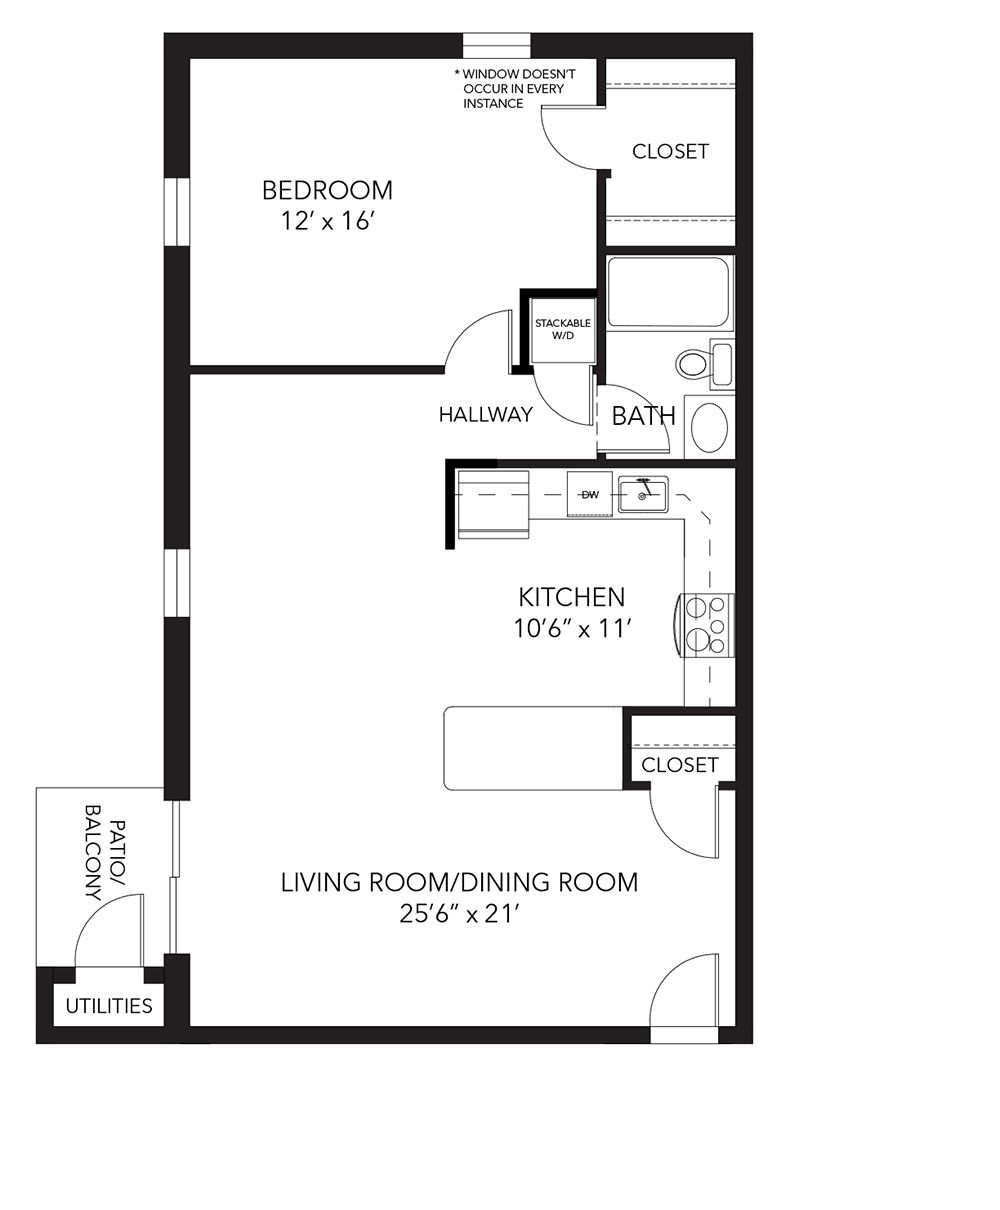 Floor Plans Of Corner Park Apartments In West Chester Pa Floor Plans Apartment Floor Plans Floor Design